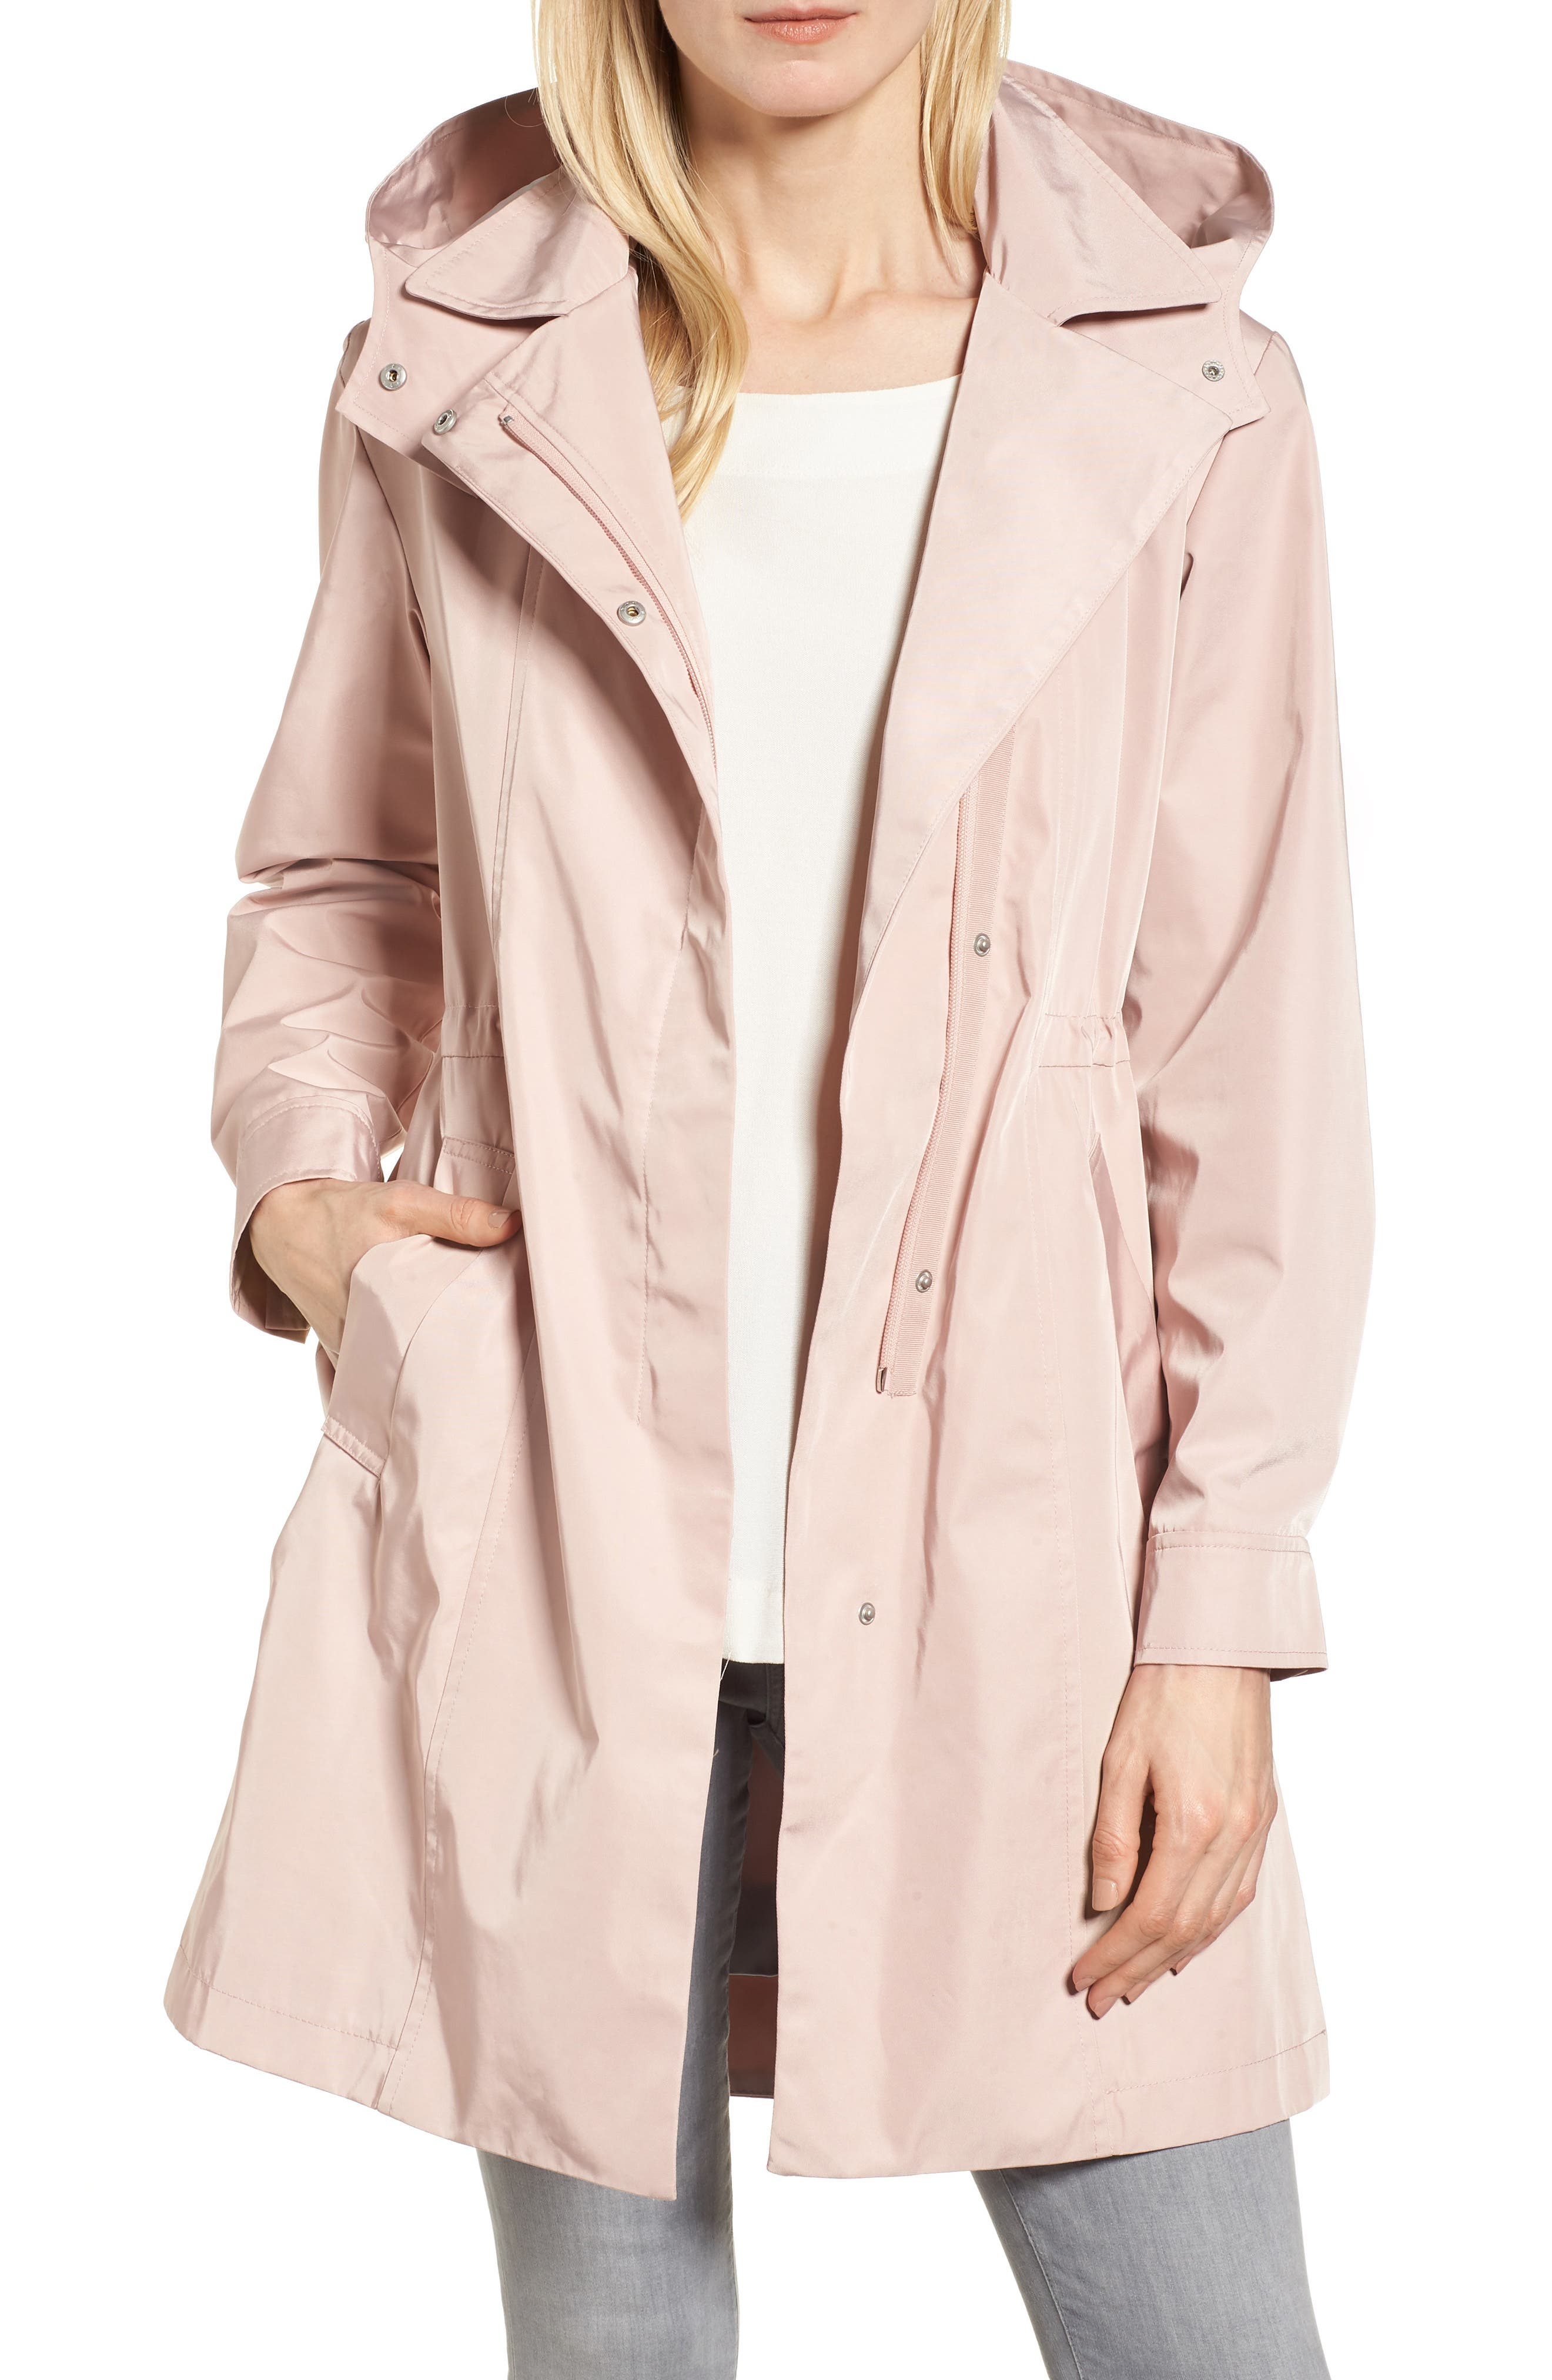 Tech Hooded Trench Coat,                         Main,                         color, Misty Rose